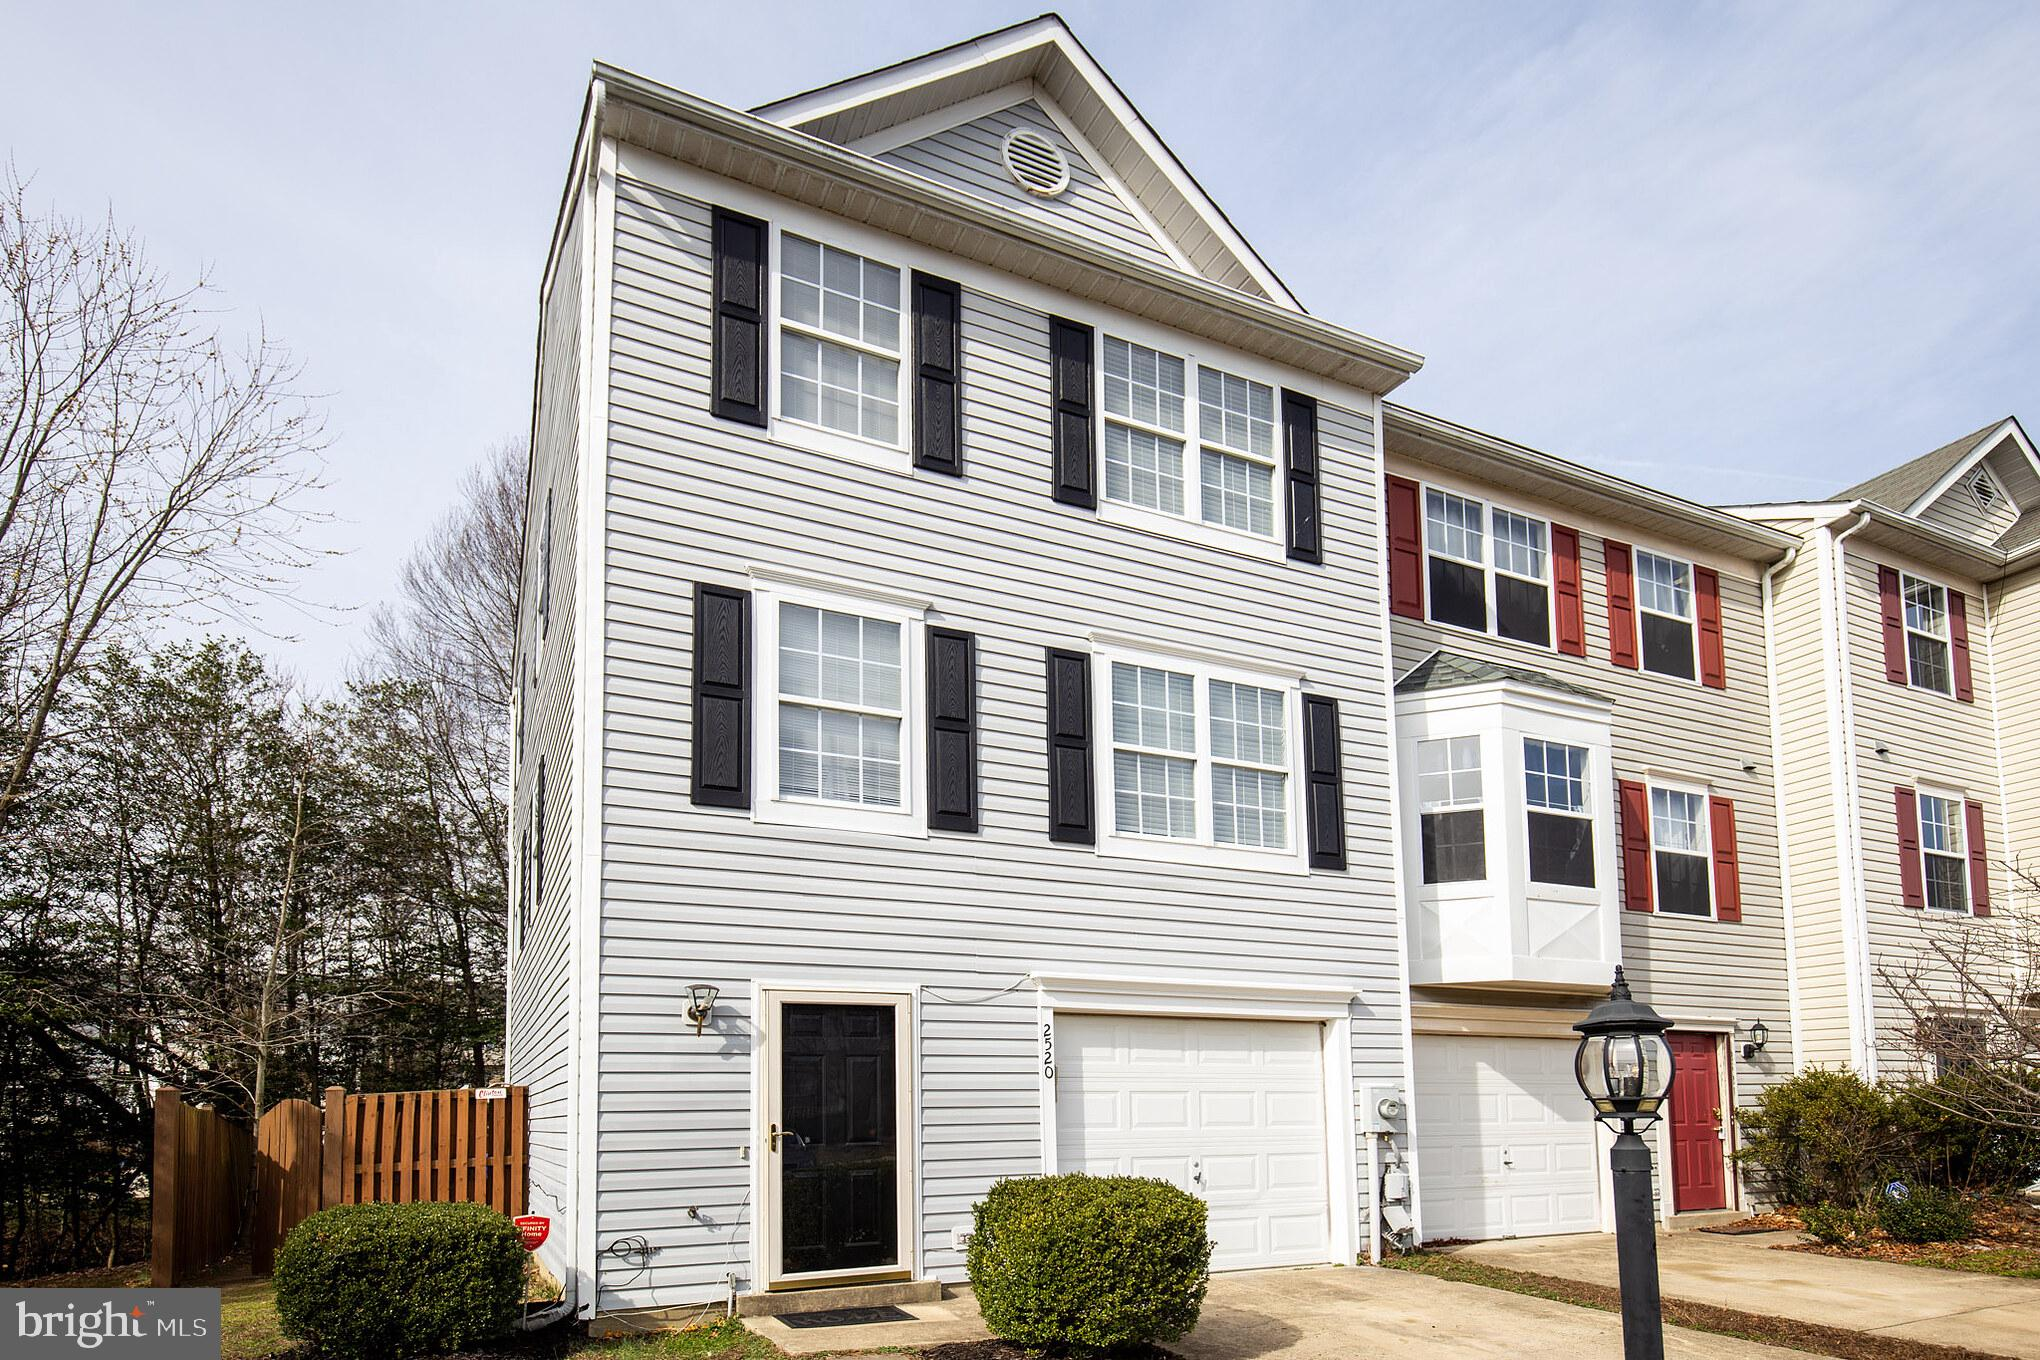 Immaculate end unit townhome featuring 3 bedrooms, 2 full bathrooms, and 2 half bathrooms in desirab